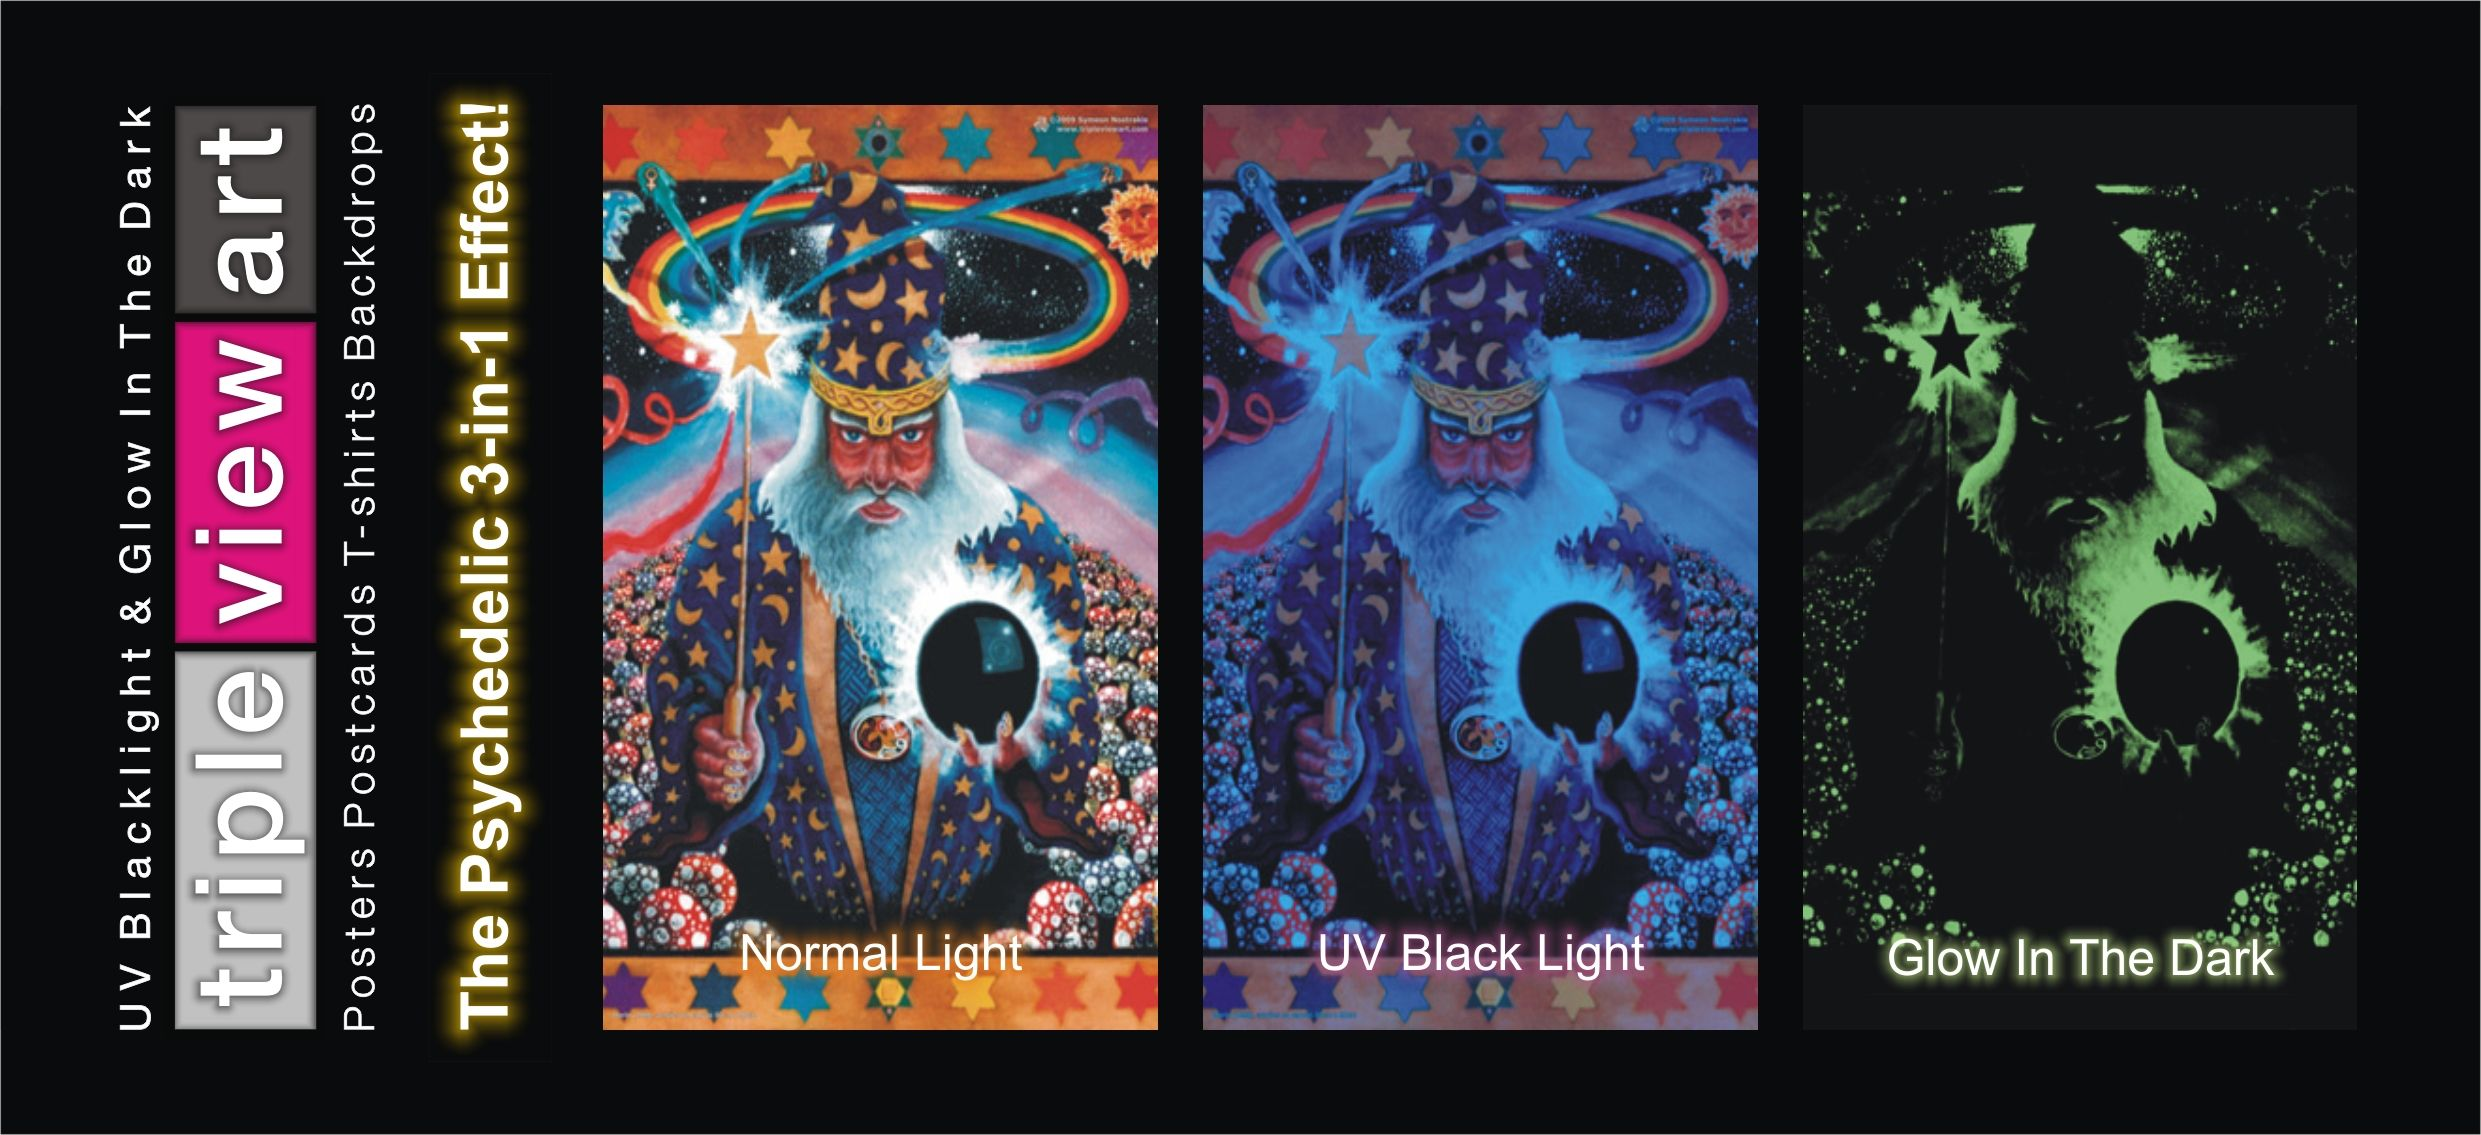 details about poster uv blacklight fluorescent glow in the dark